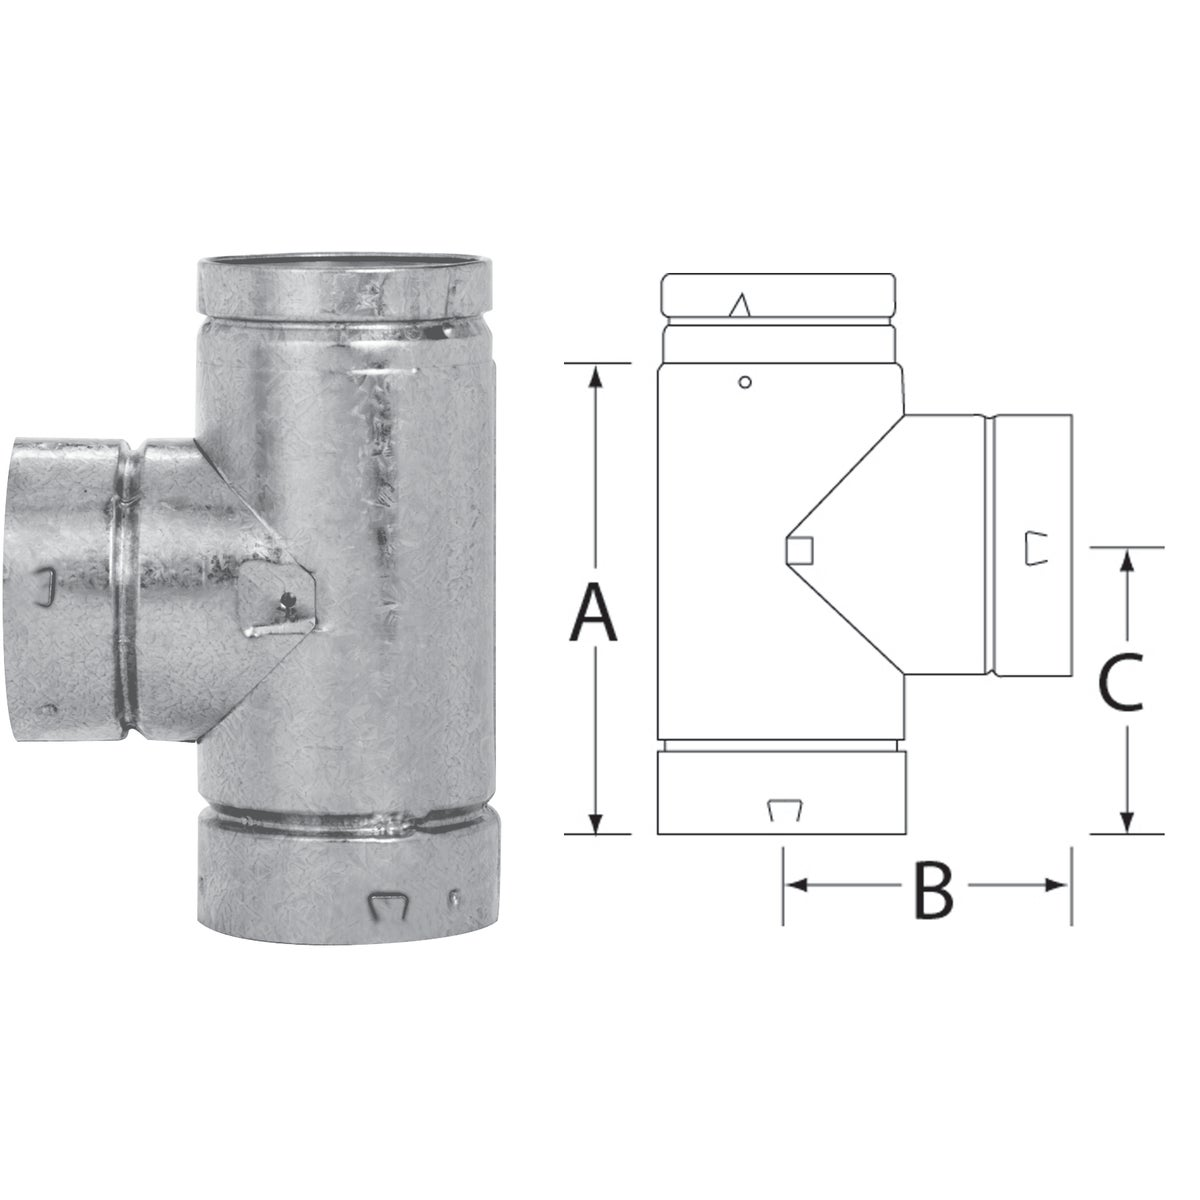 "3"" BVNT DBL WALL GAS TEE - 3RV-TS by Selkirk Corporation"